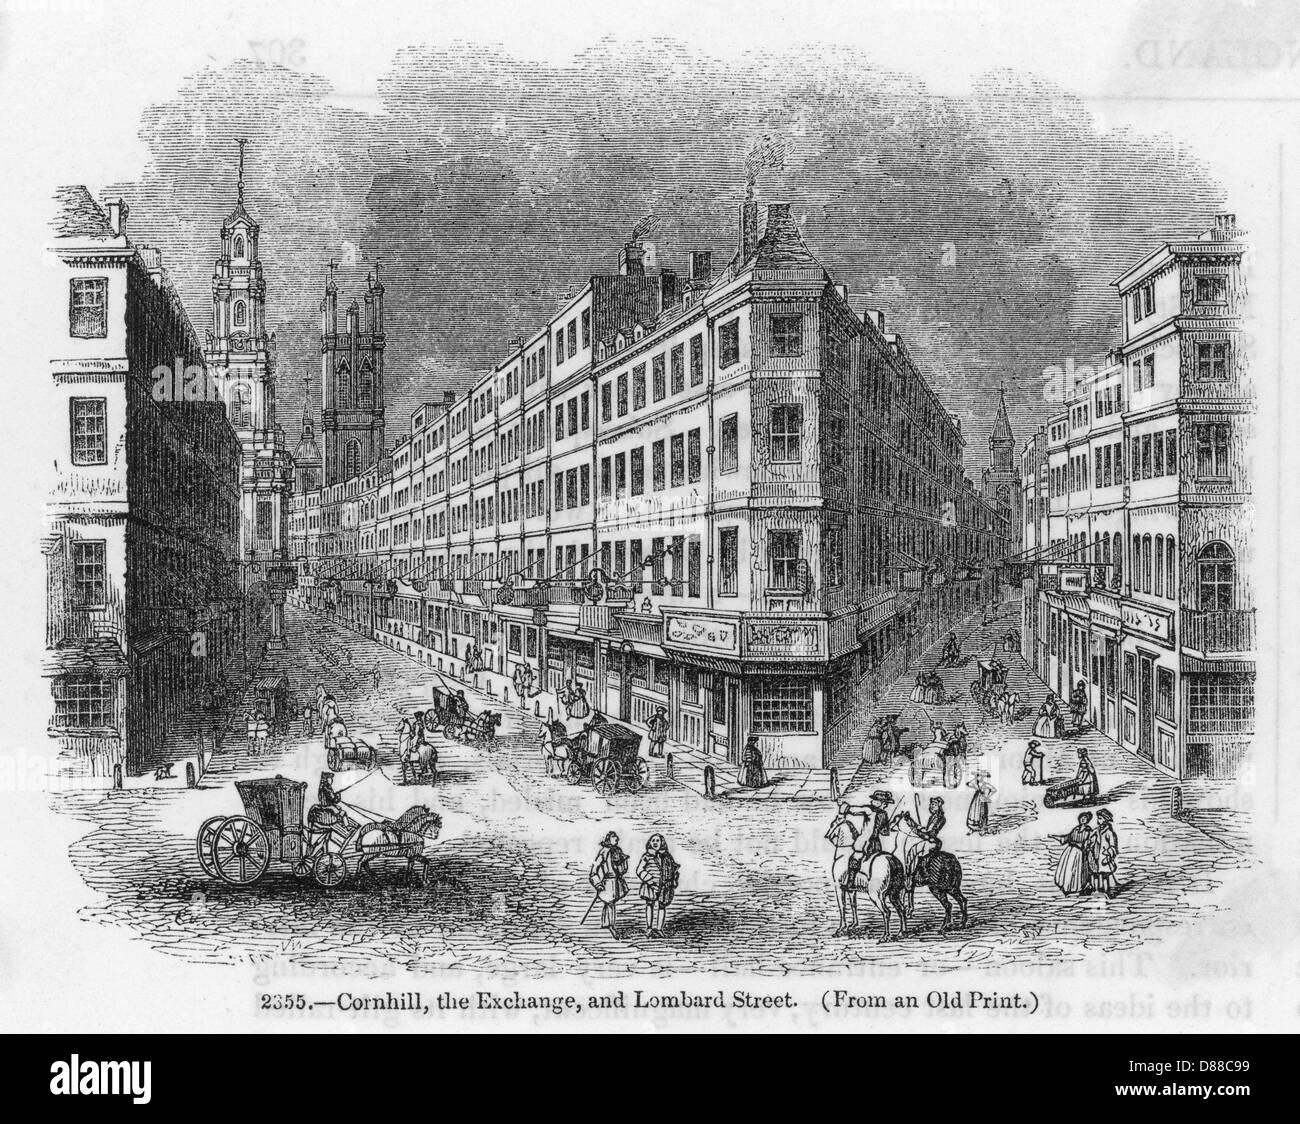 London Streets C.1700 - Stock Image